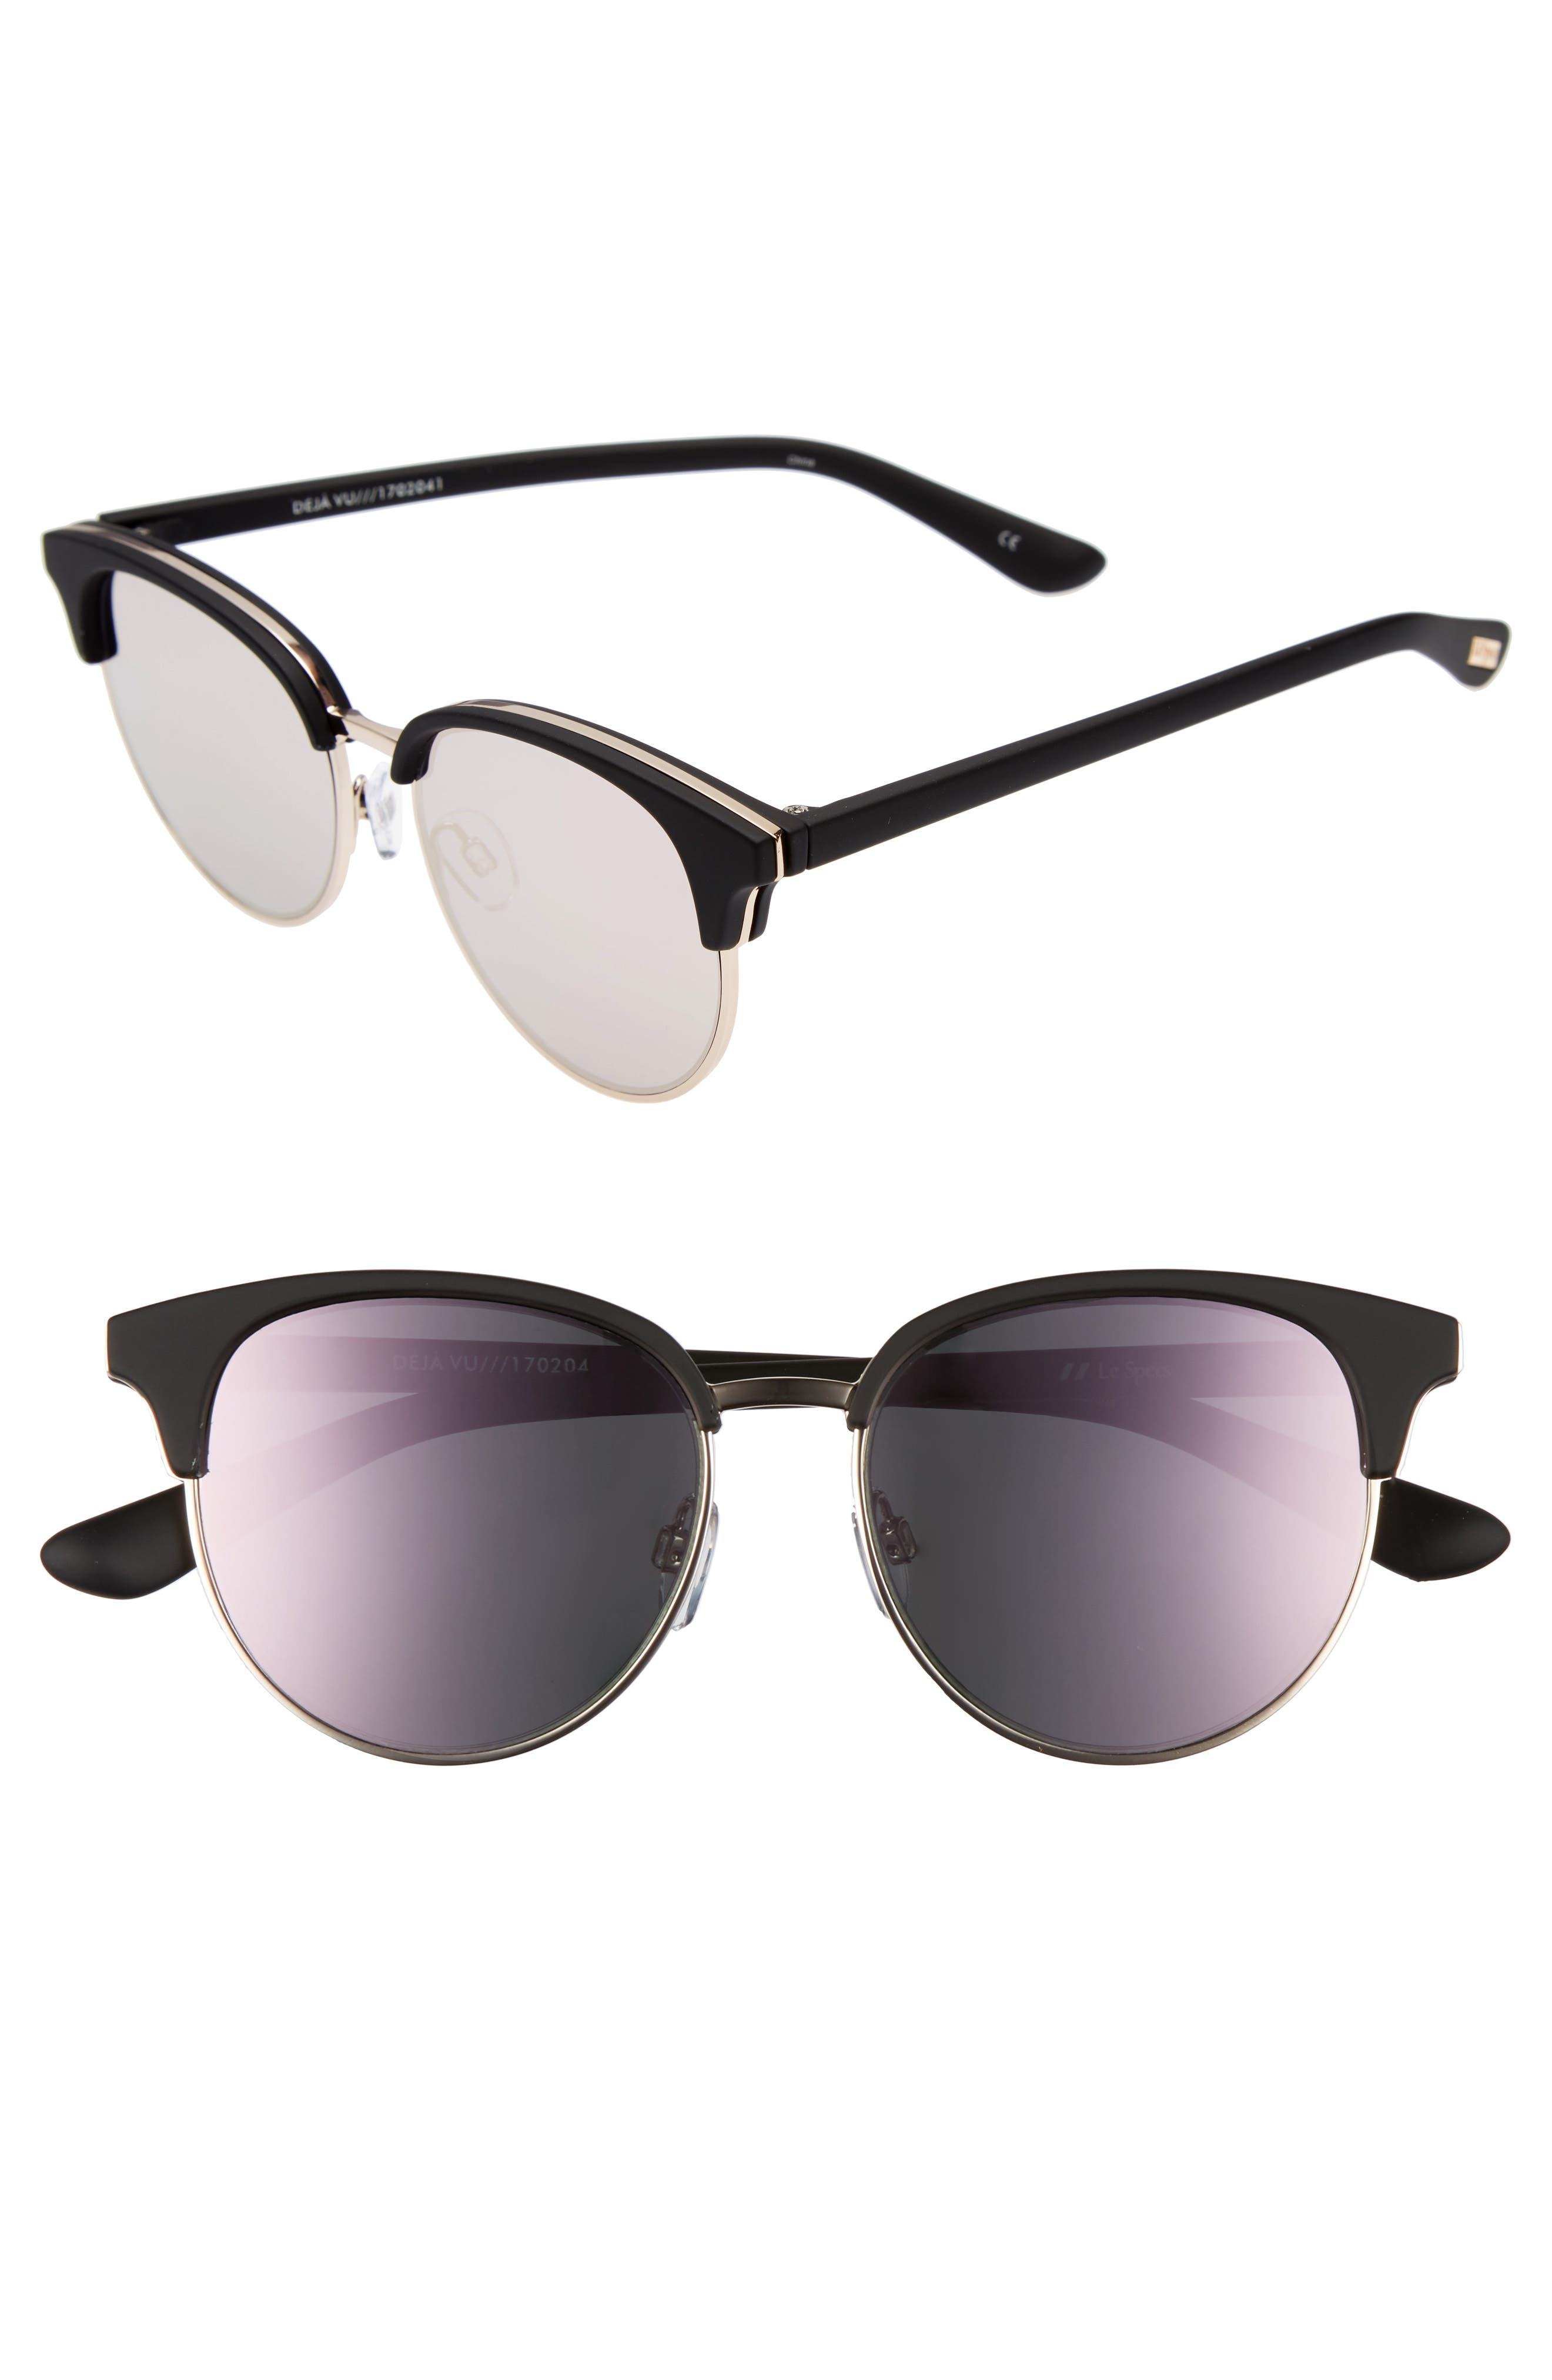 Deja Vu 51mm Round Sunglasses,                         Main,                         color, Black Rubber